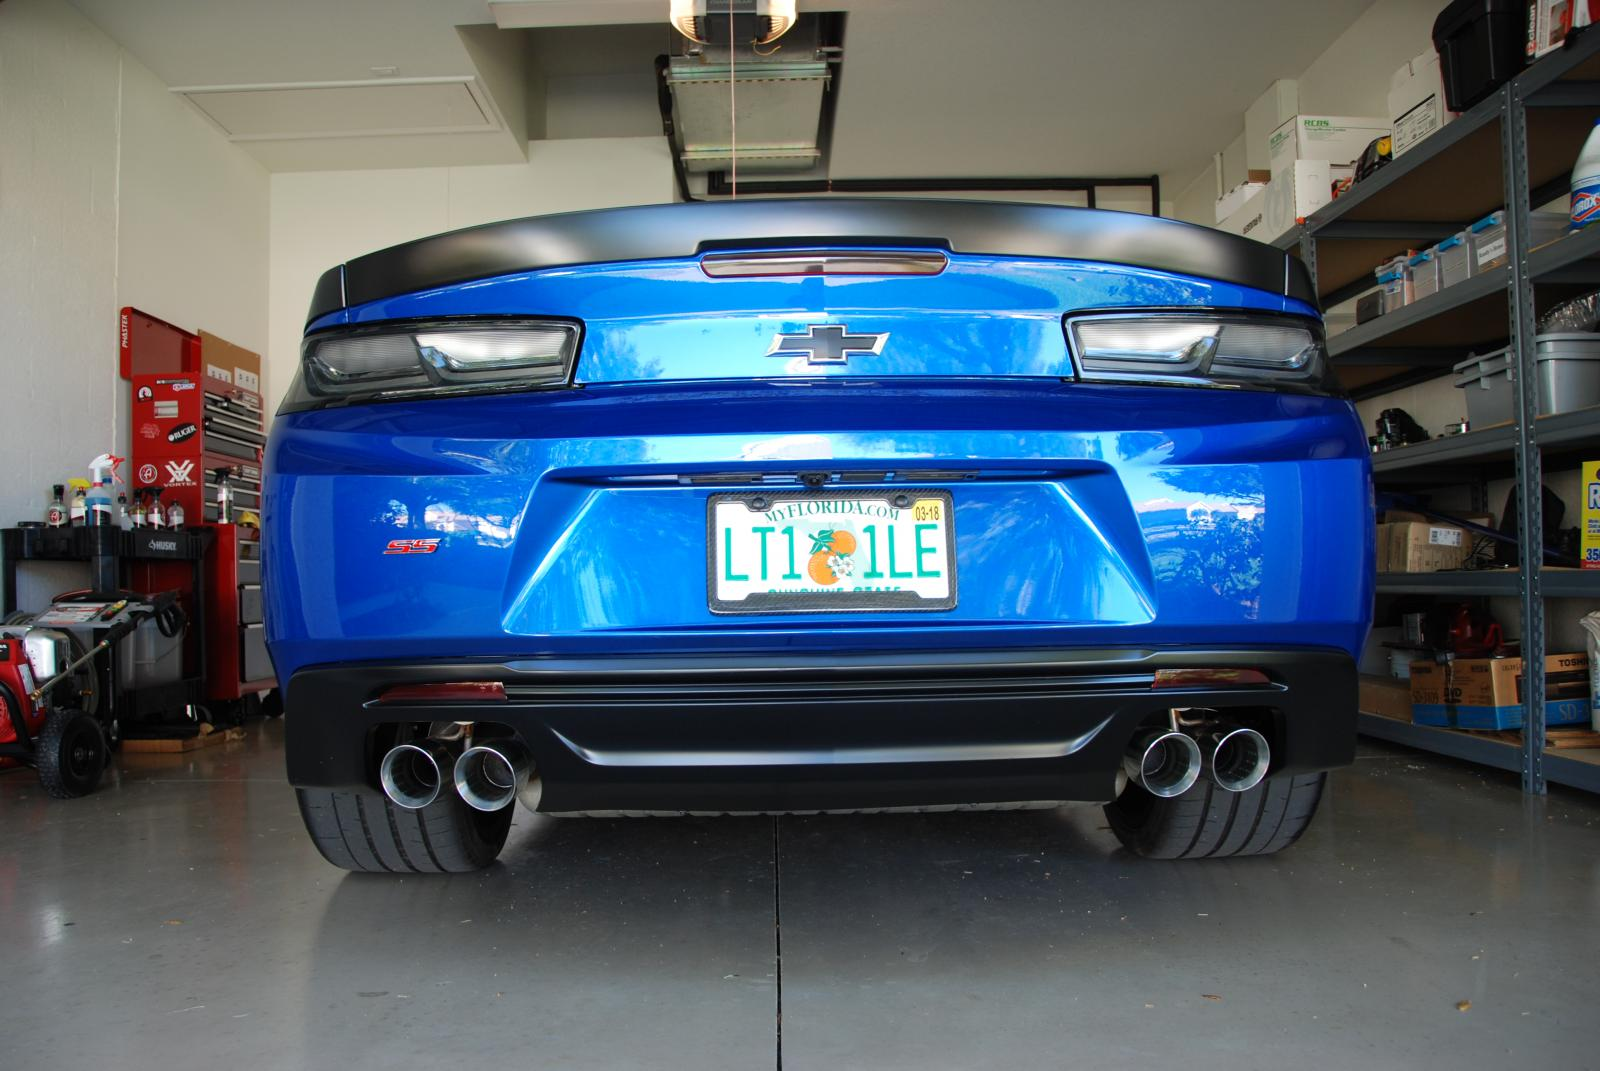 Personalized Plates For 1le Camaro6